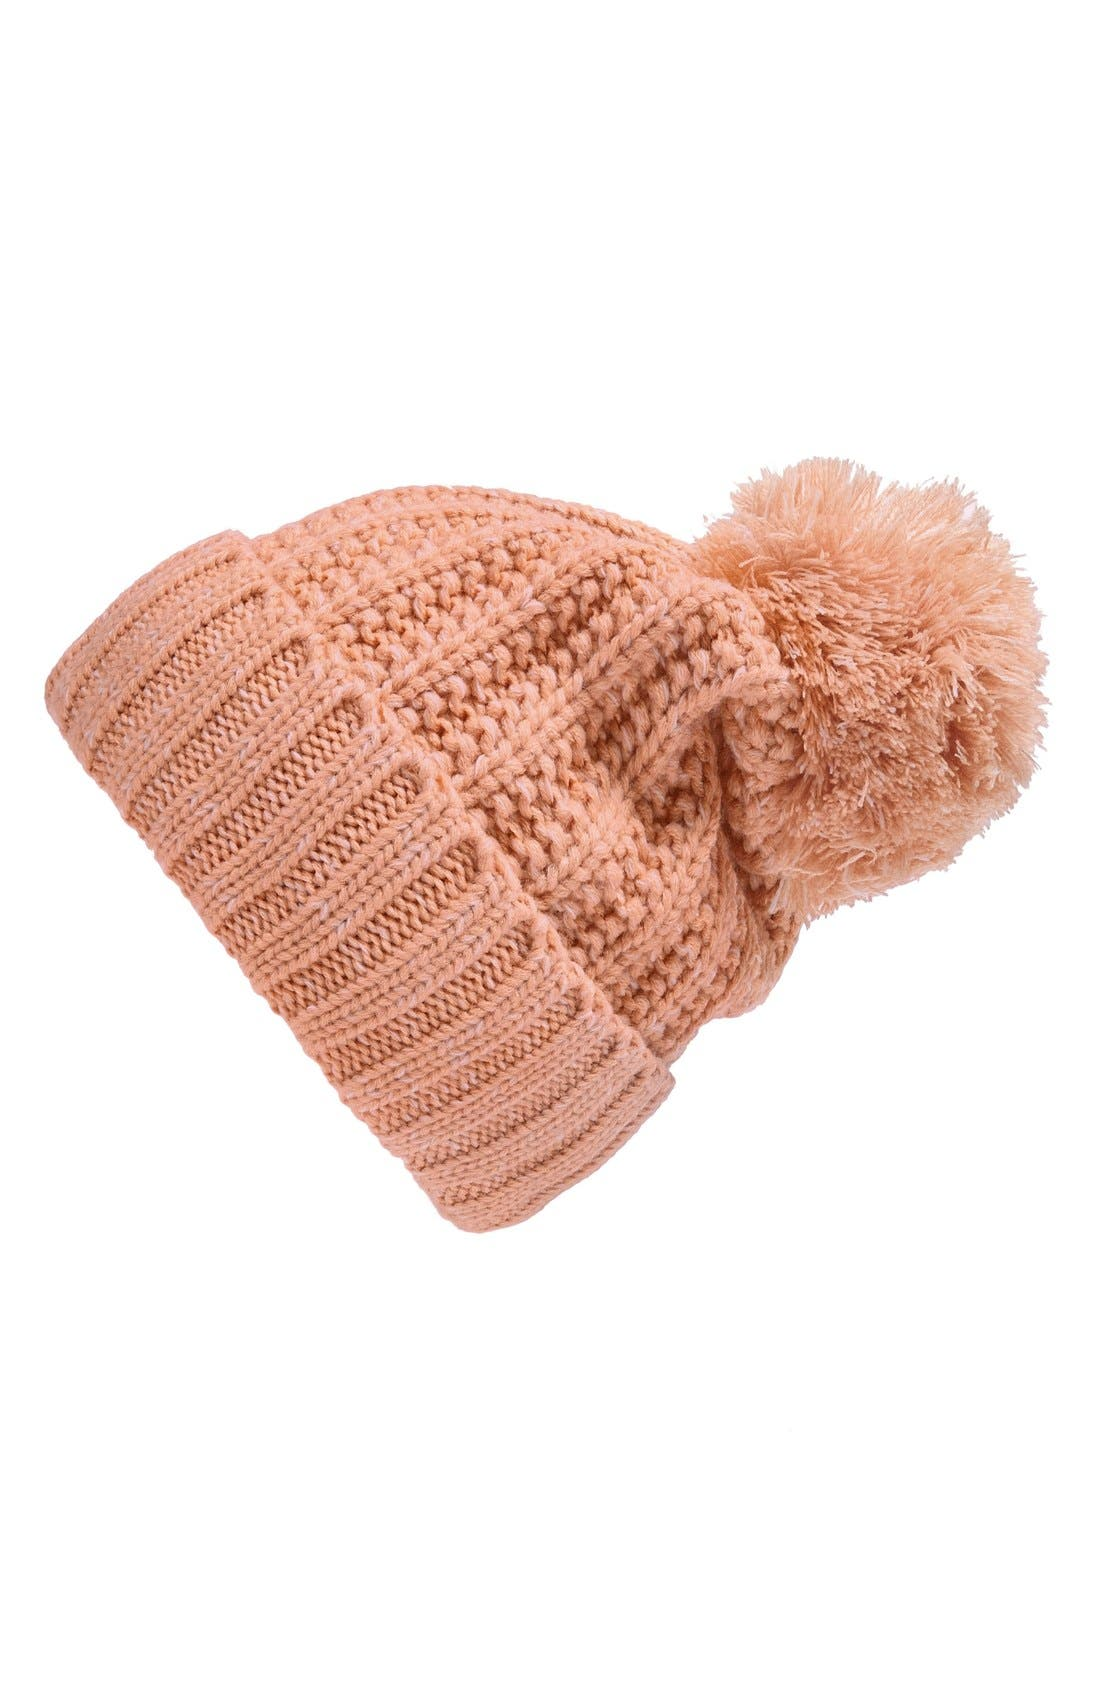 Main Image - Phase 3 Marled Cuff Beanie with Pompom